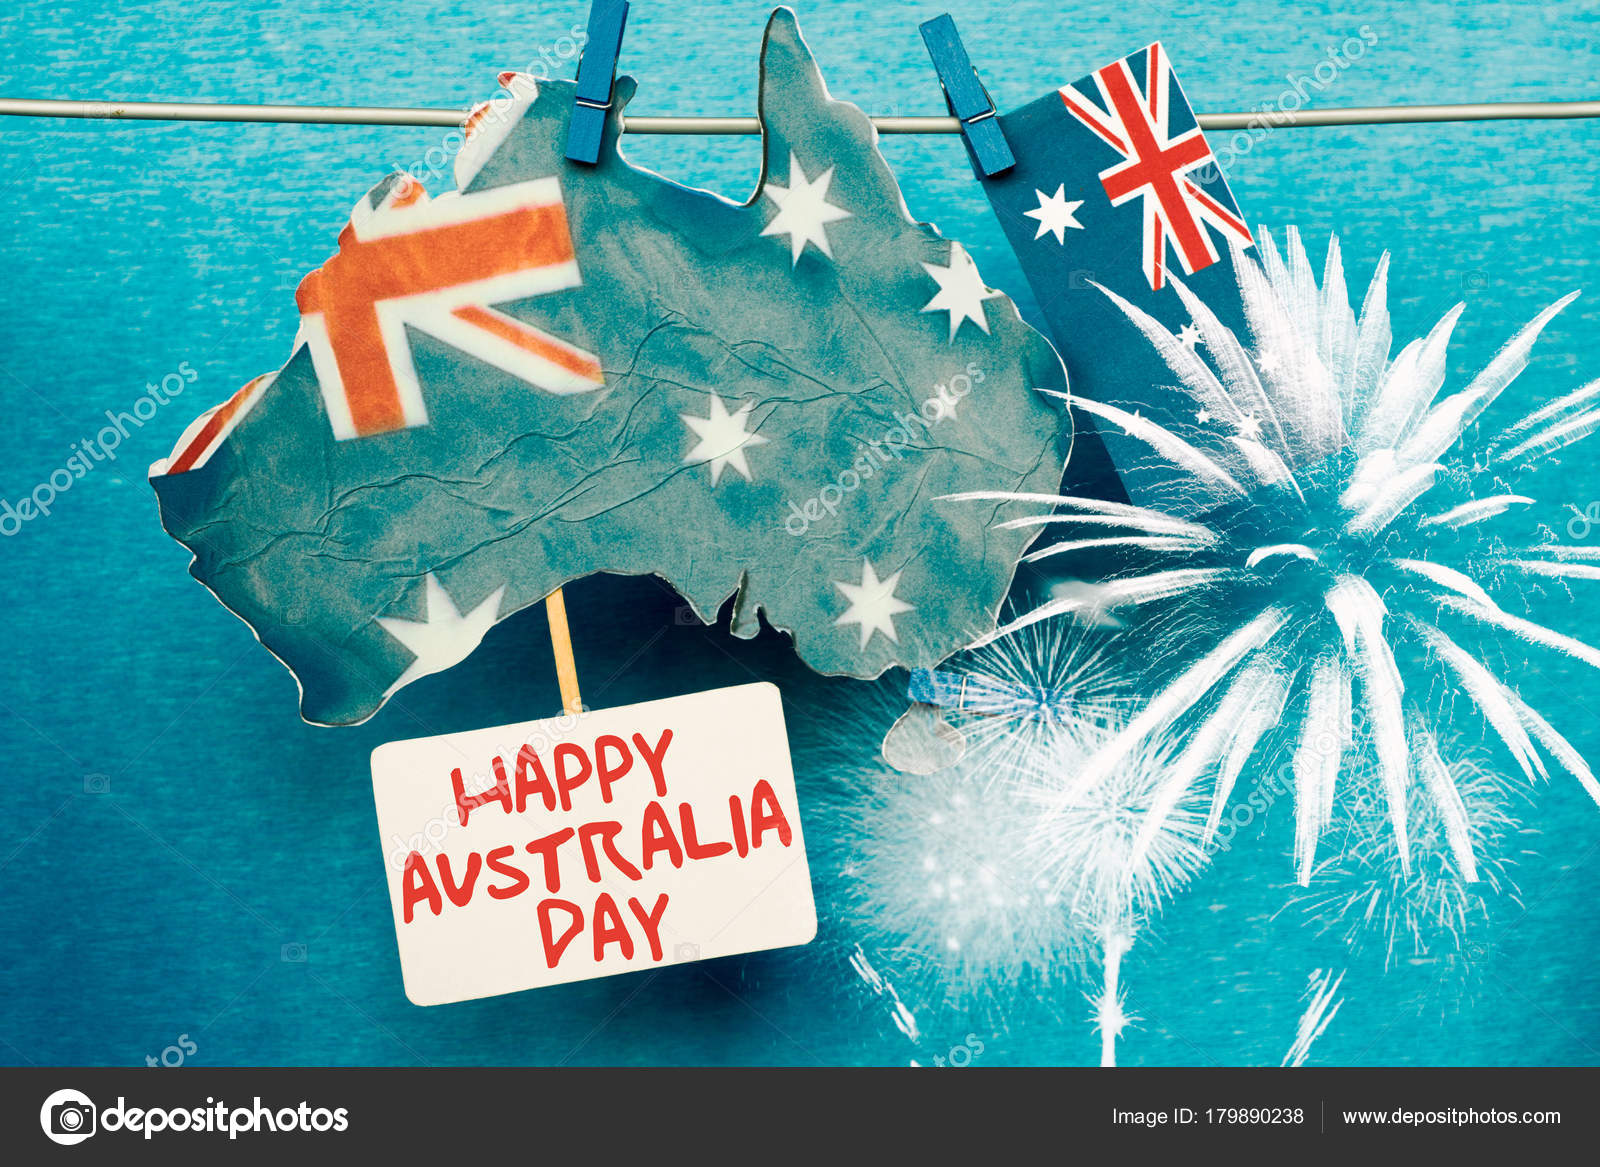 Celebrate australia day holiday january happy australia day message celebrate australia day holiday january happy australia day message greeting stock photo m4hsunfo